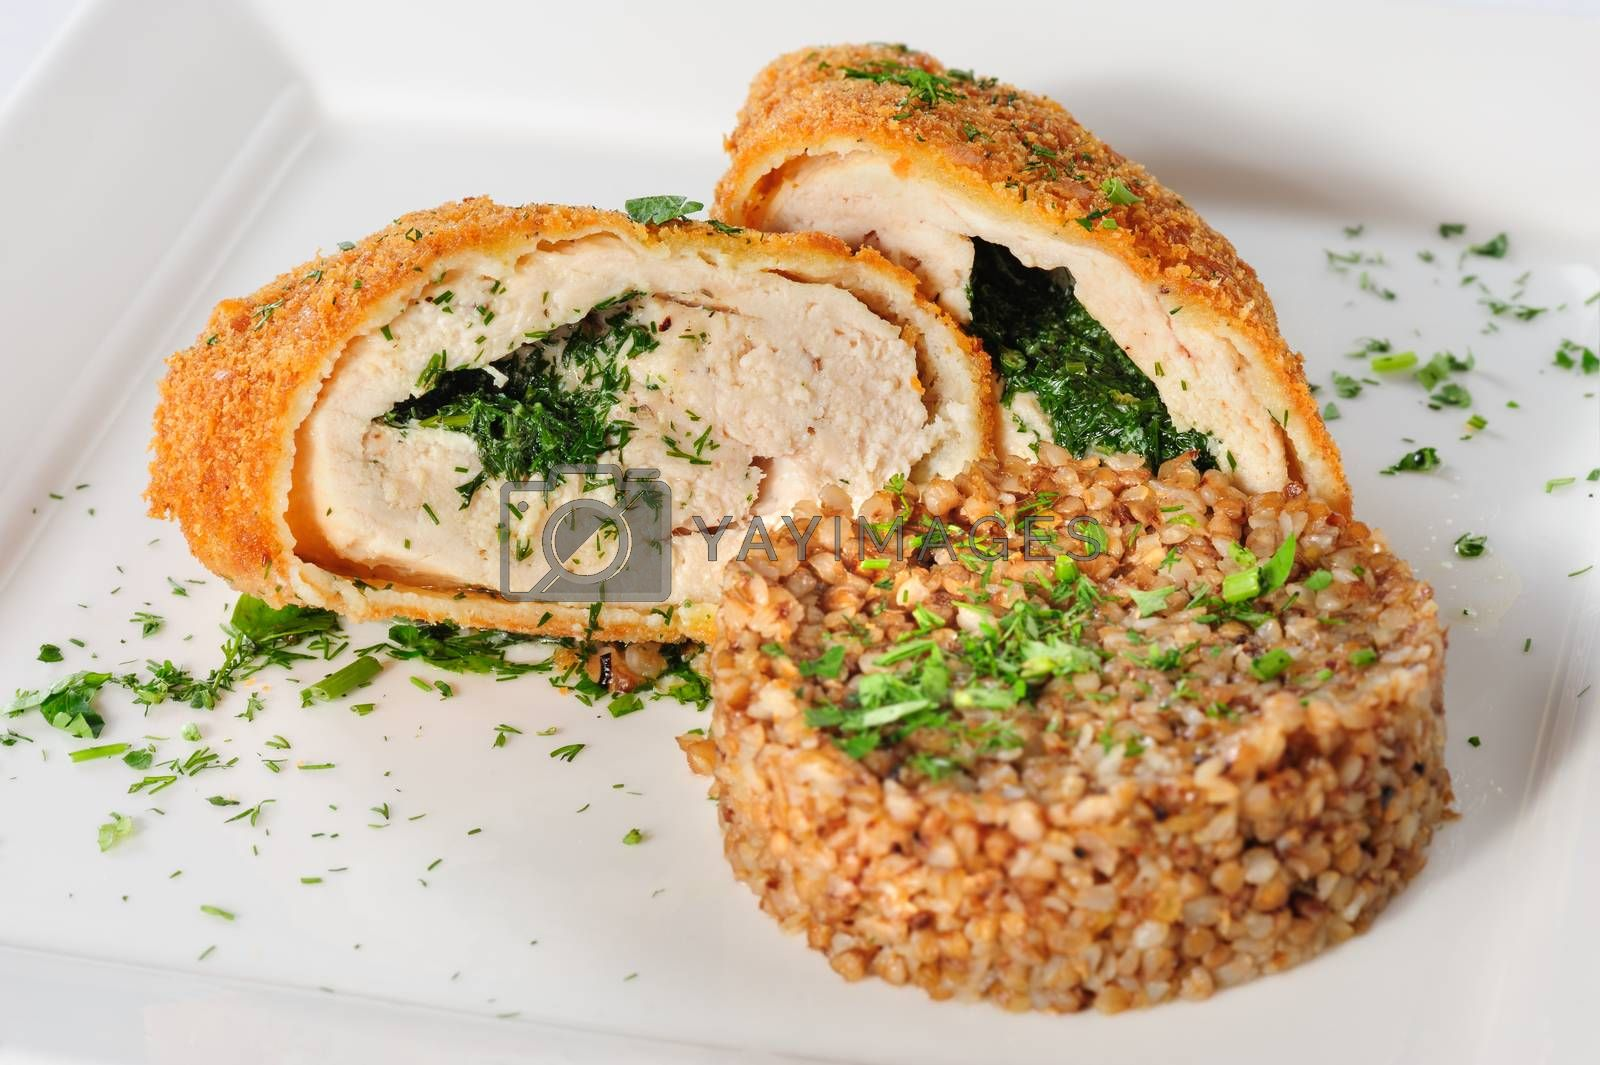 Big cutlet of turkey meat with garnish made of buckwheat cereal